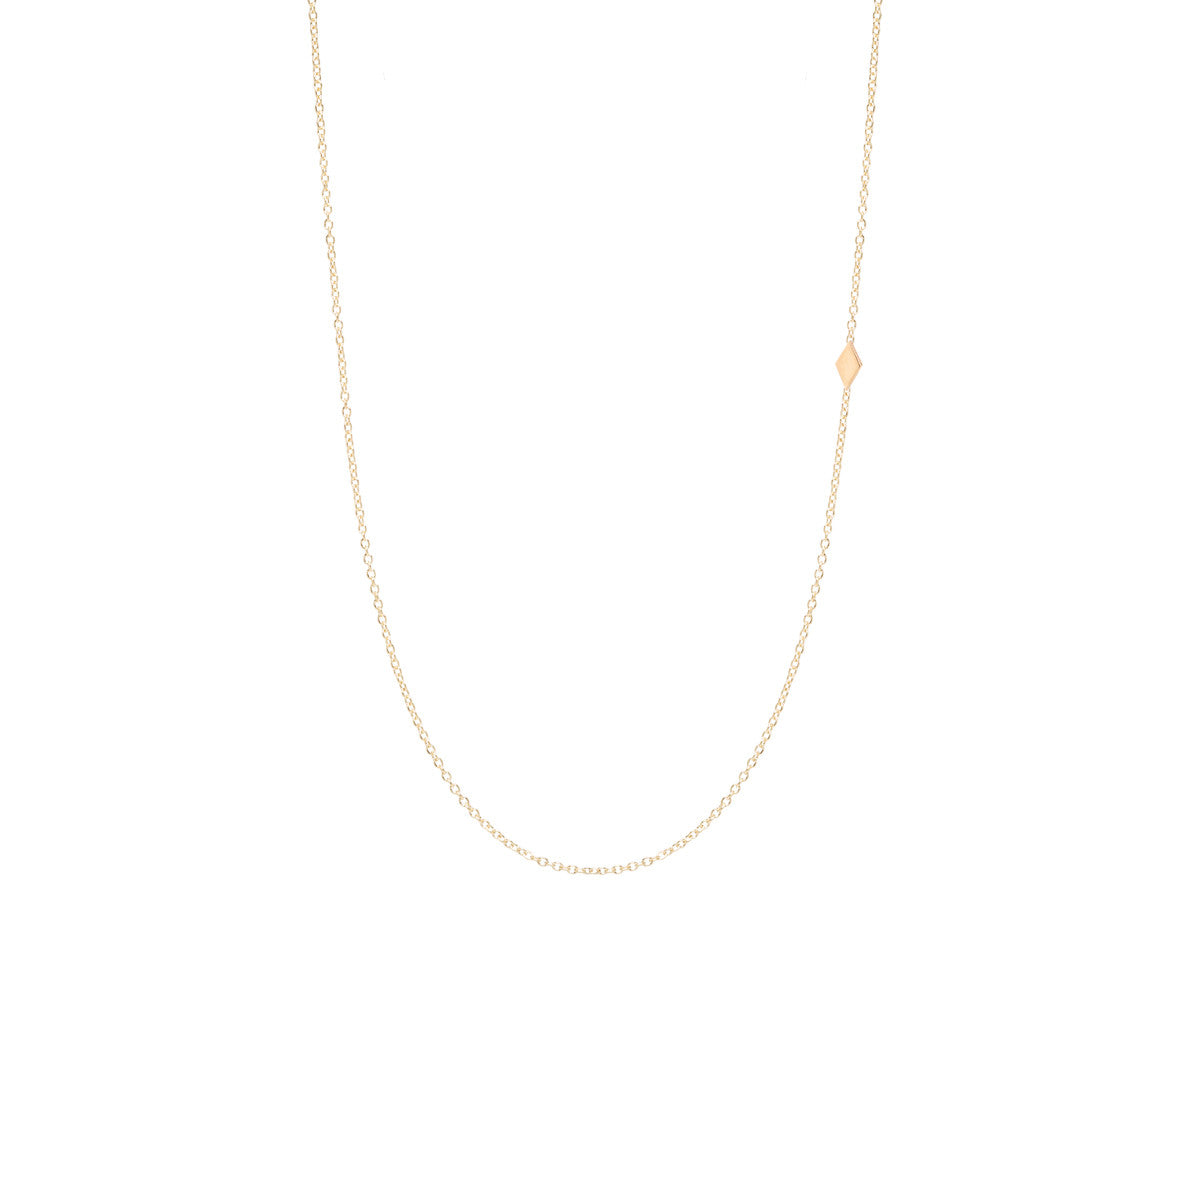 Zoë Chicco 14kt Yellow Gold Itty Bitty Off-Center Diamond Shape Necklace